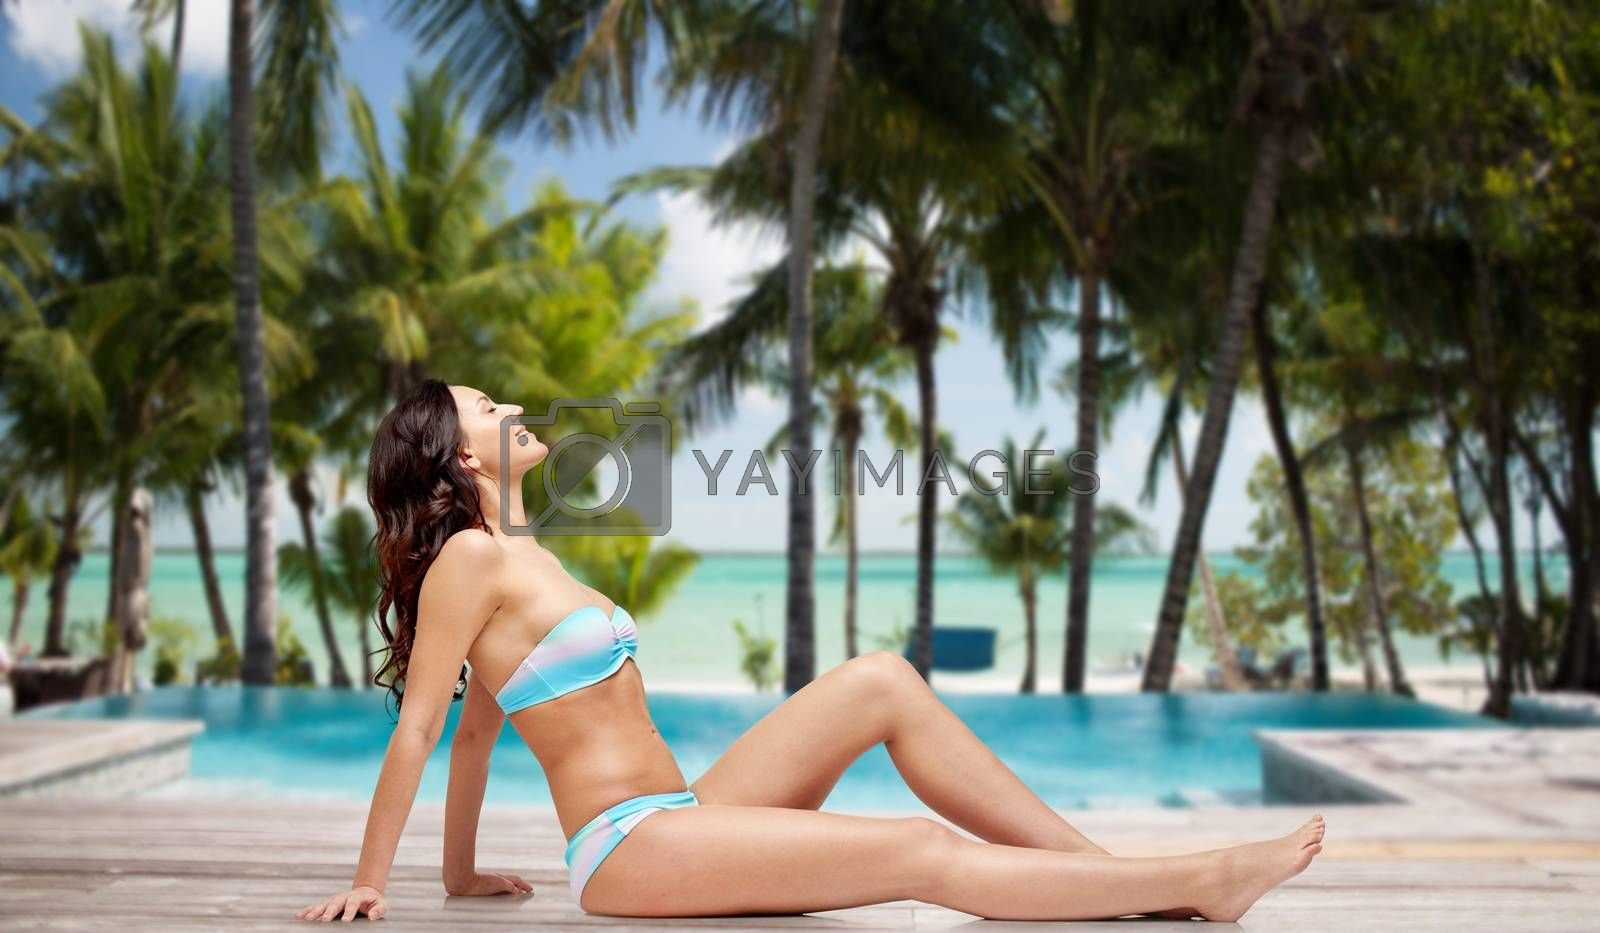 people, fashion, swimwear, summer and travel concept - happy young woman tanning in bikini swimsuit over tropical beach with swimming pool background